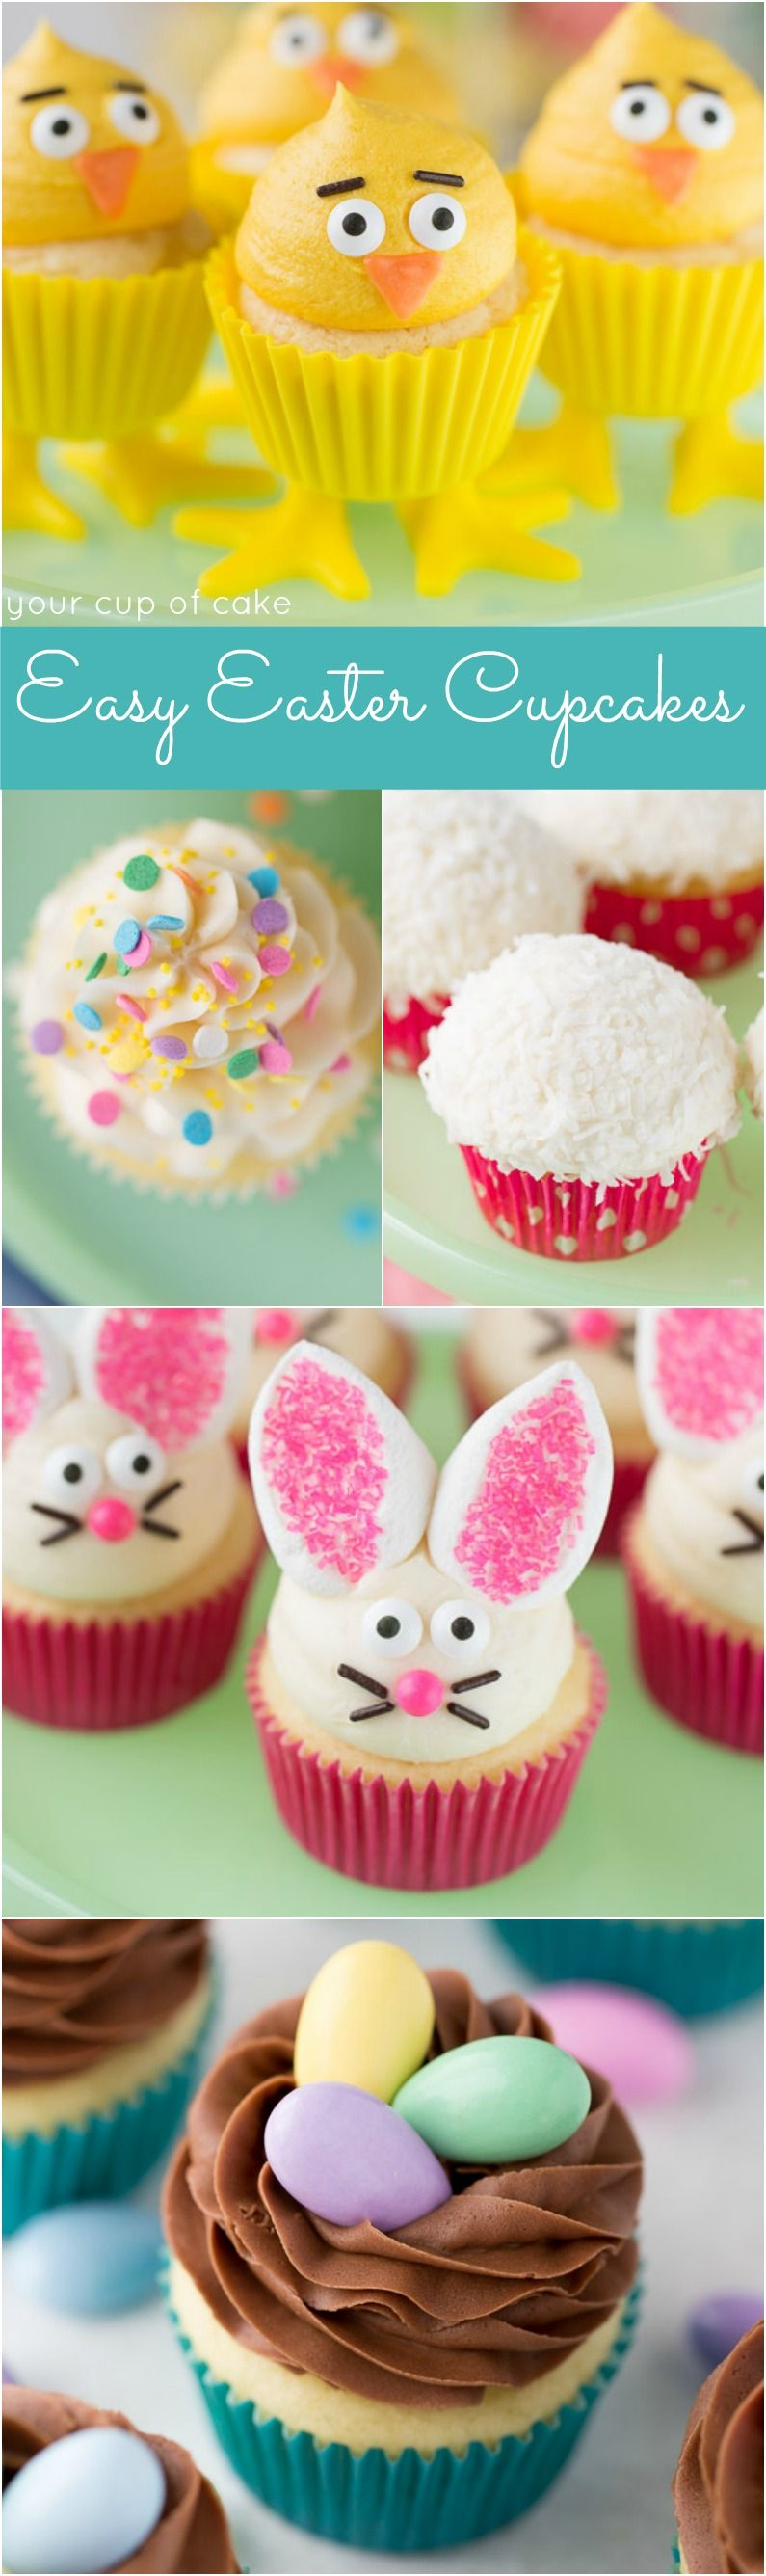 Easter Cupcake Decorating Ideas Pinterest : Easy Easter Cupcake Decorating Ideas! The Marshmallow ...